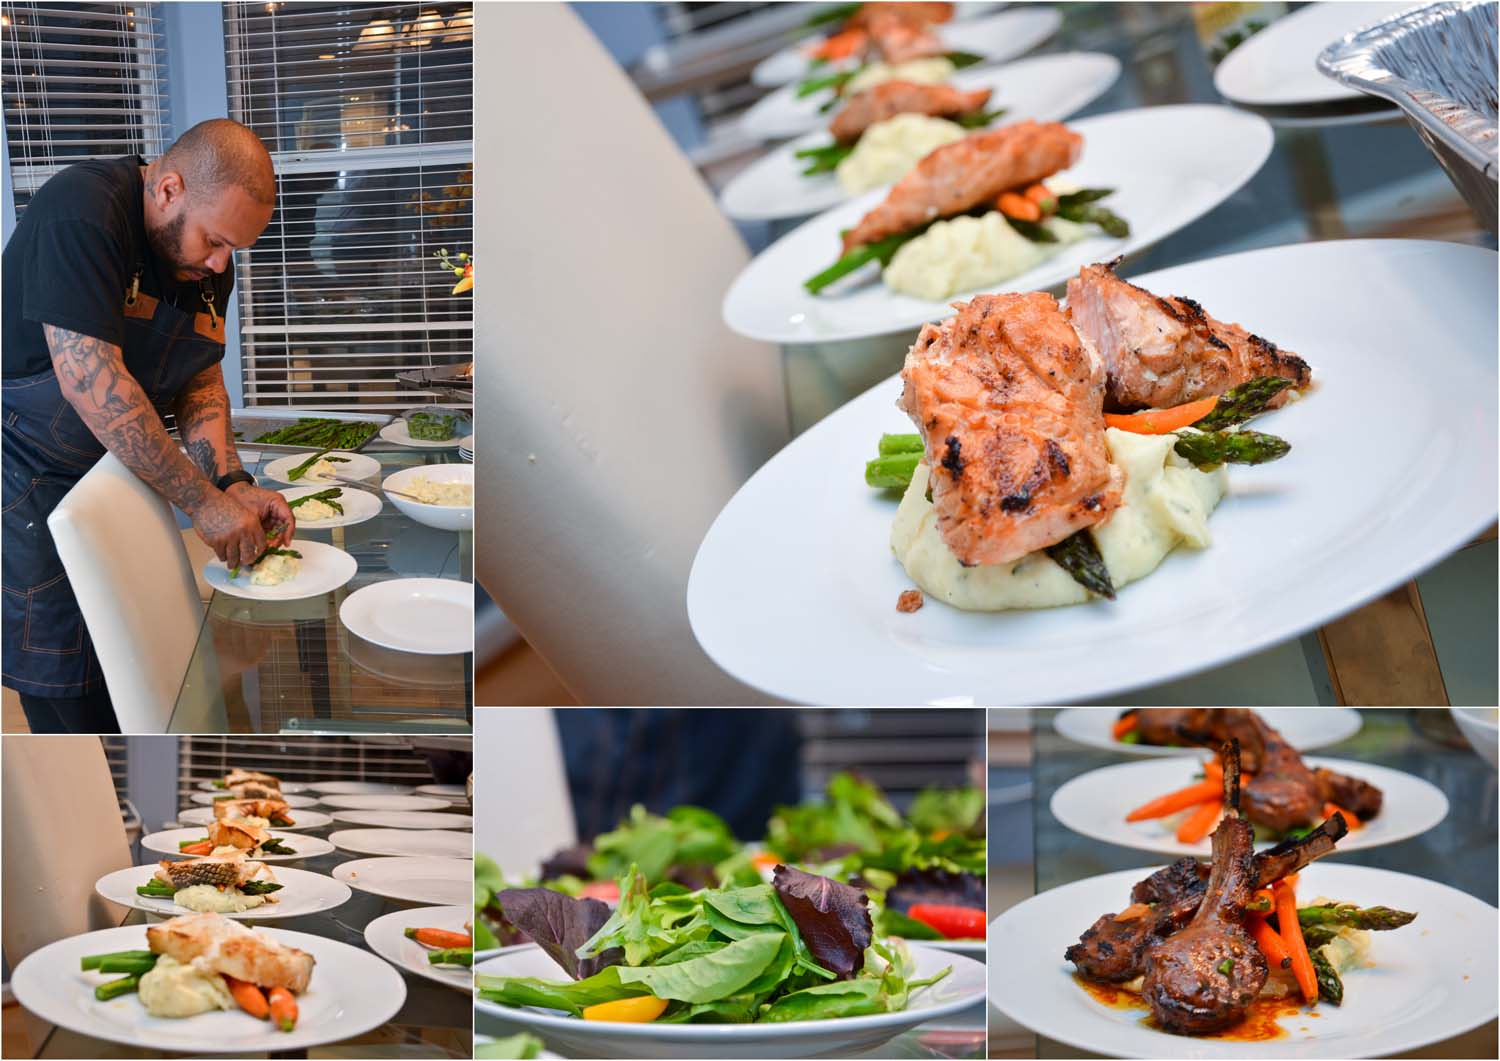 Check out the private Chef Aleem in action to learn more about the chef and his services click  here!